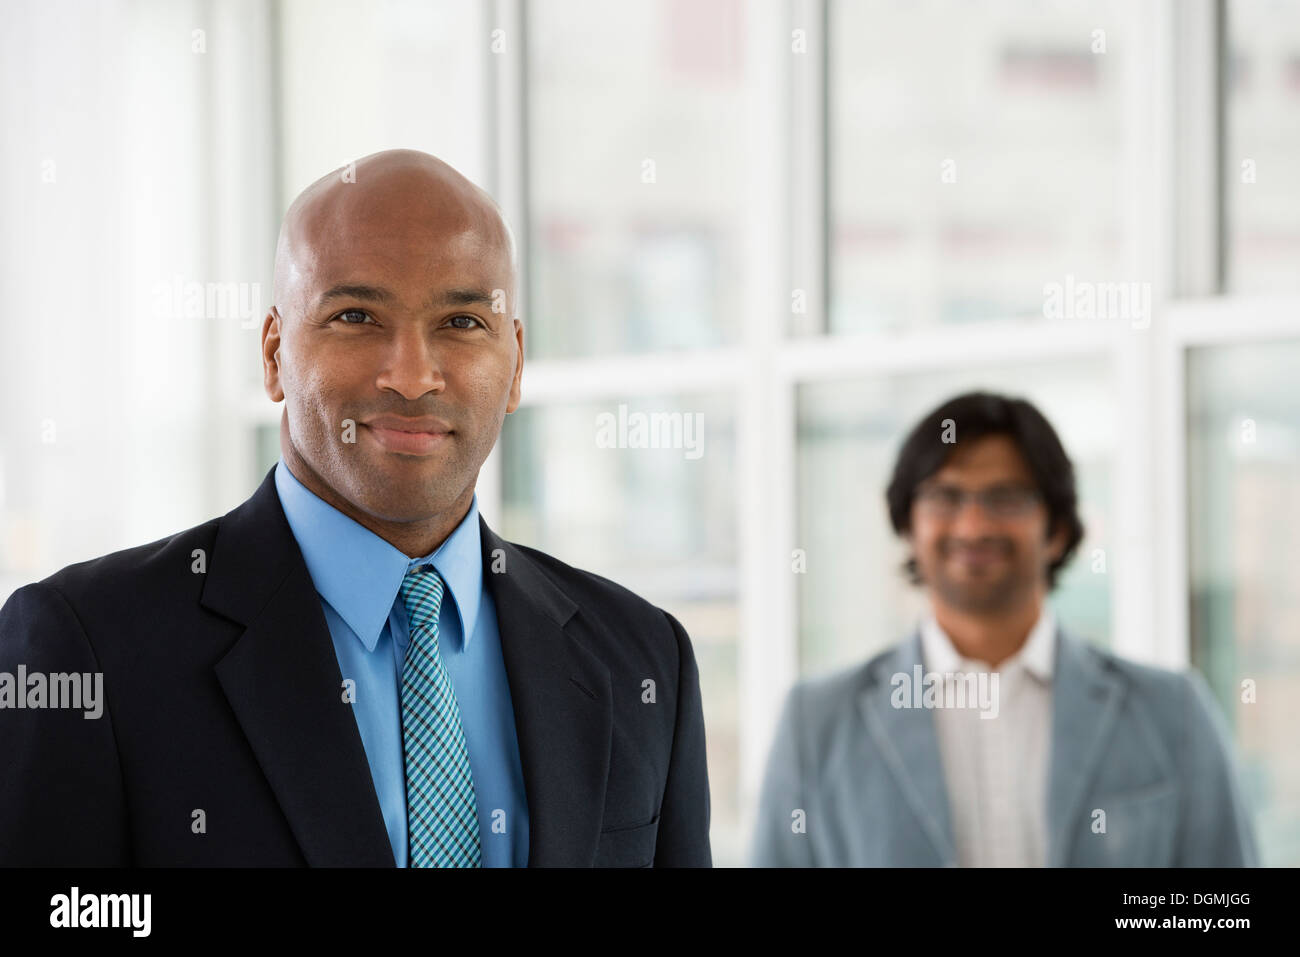 Business people. Two men in suits. - Stock Image